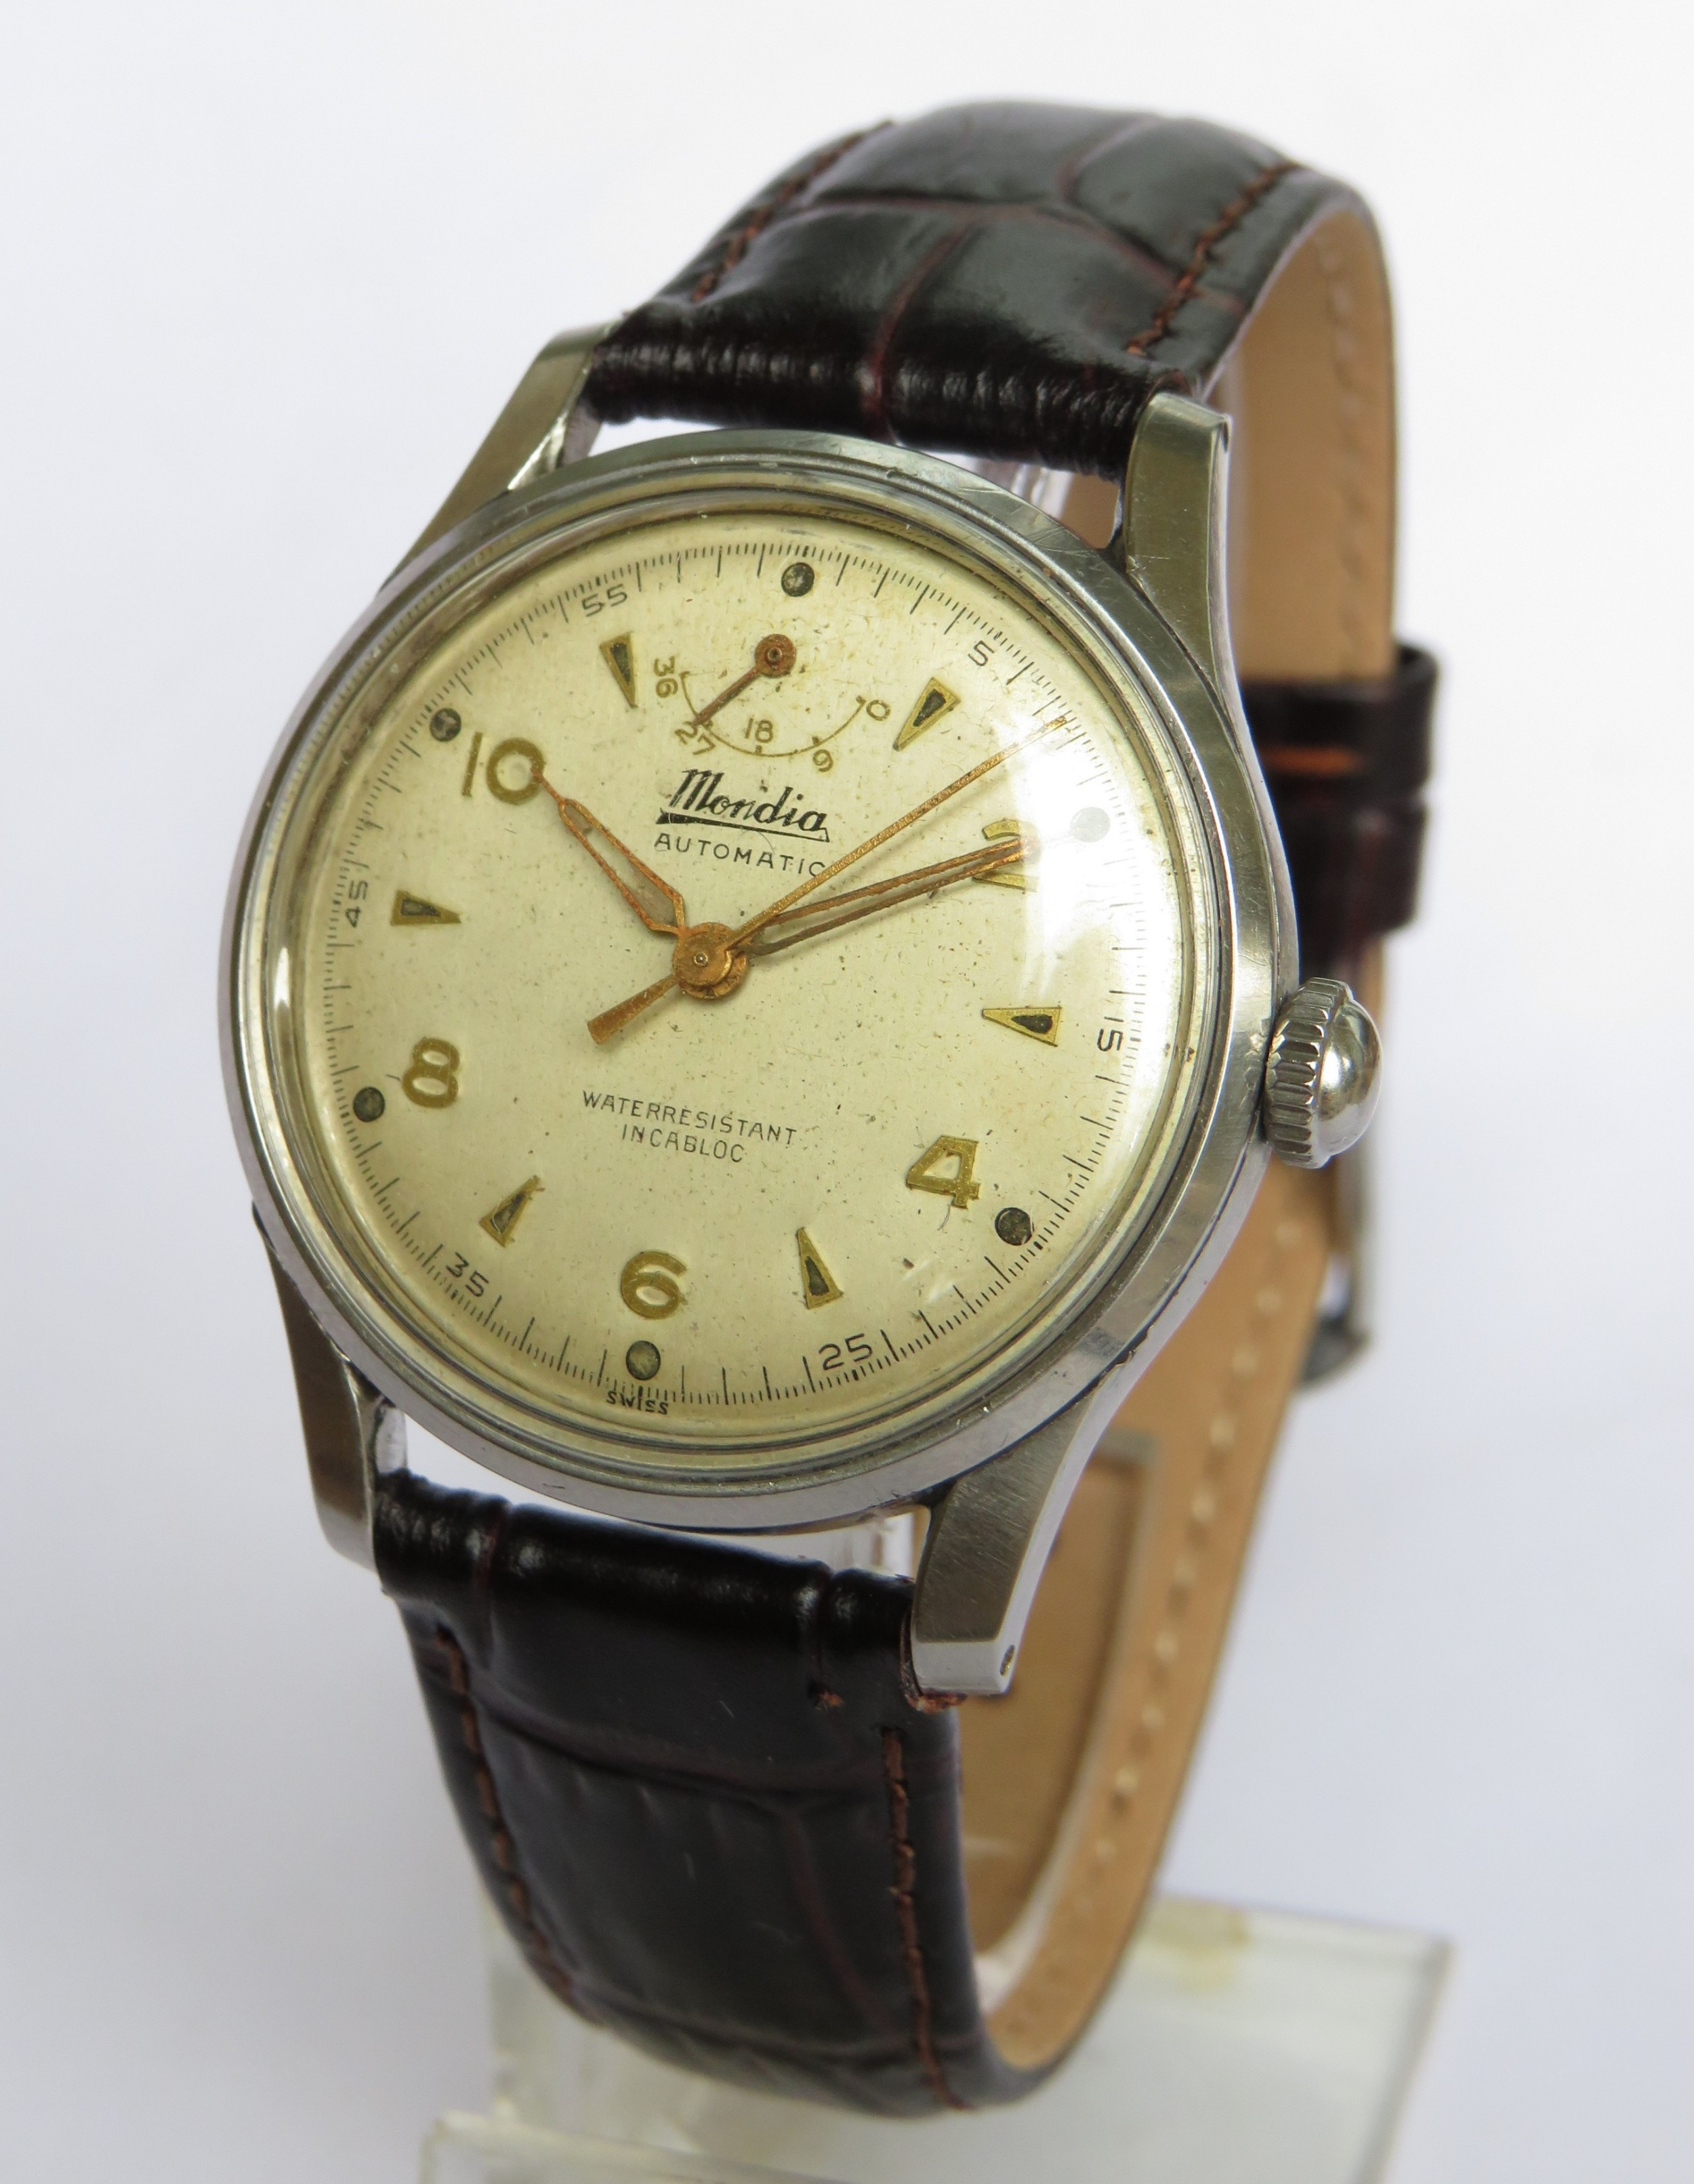 gents 1950s mondia wrist watch with power reserve indicator